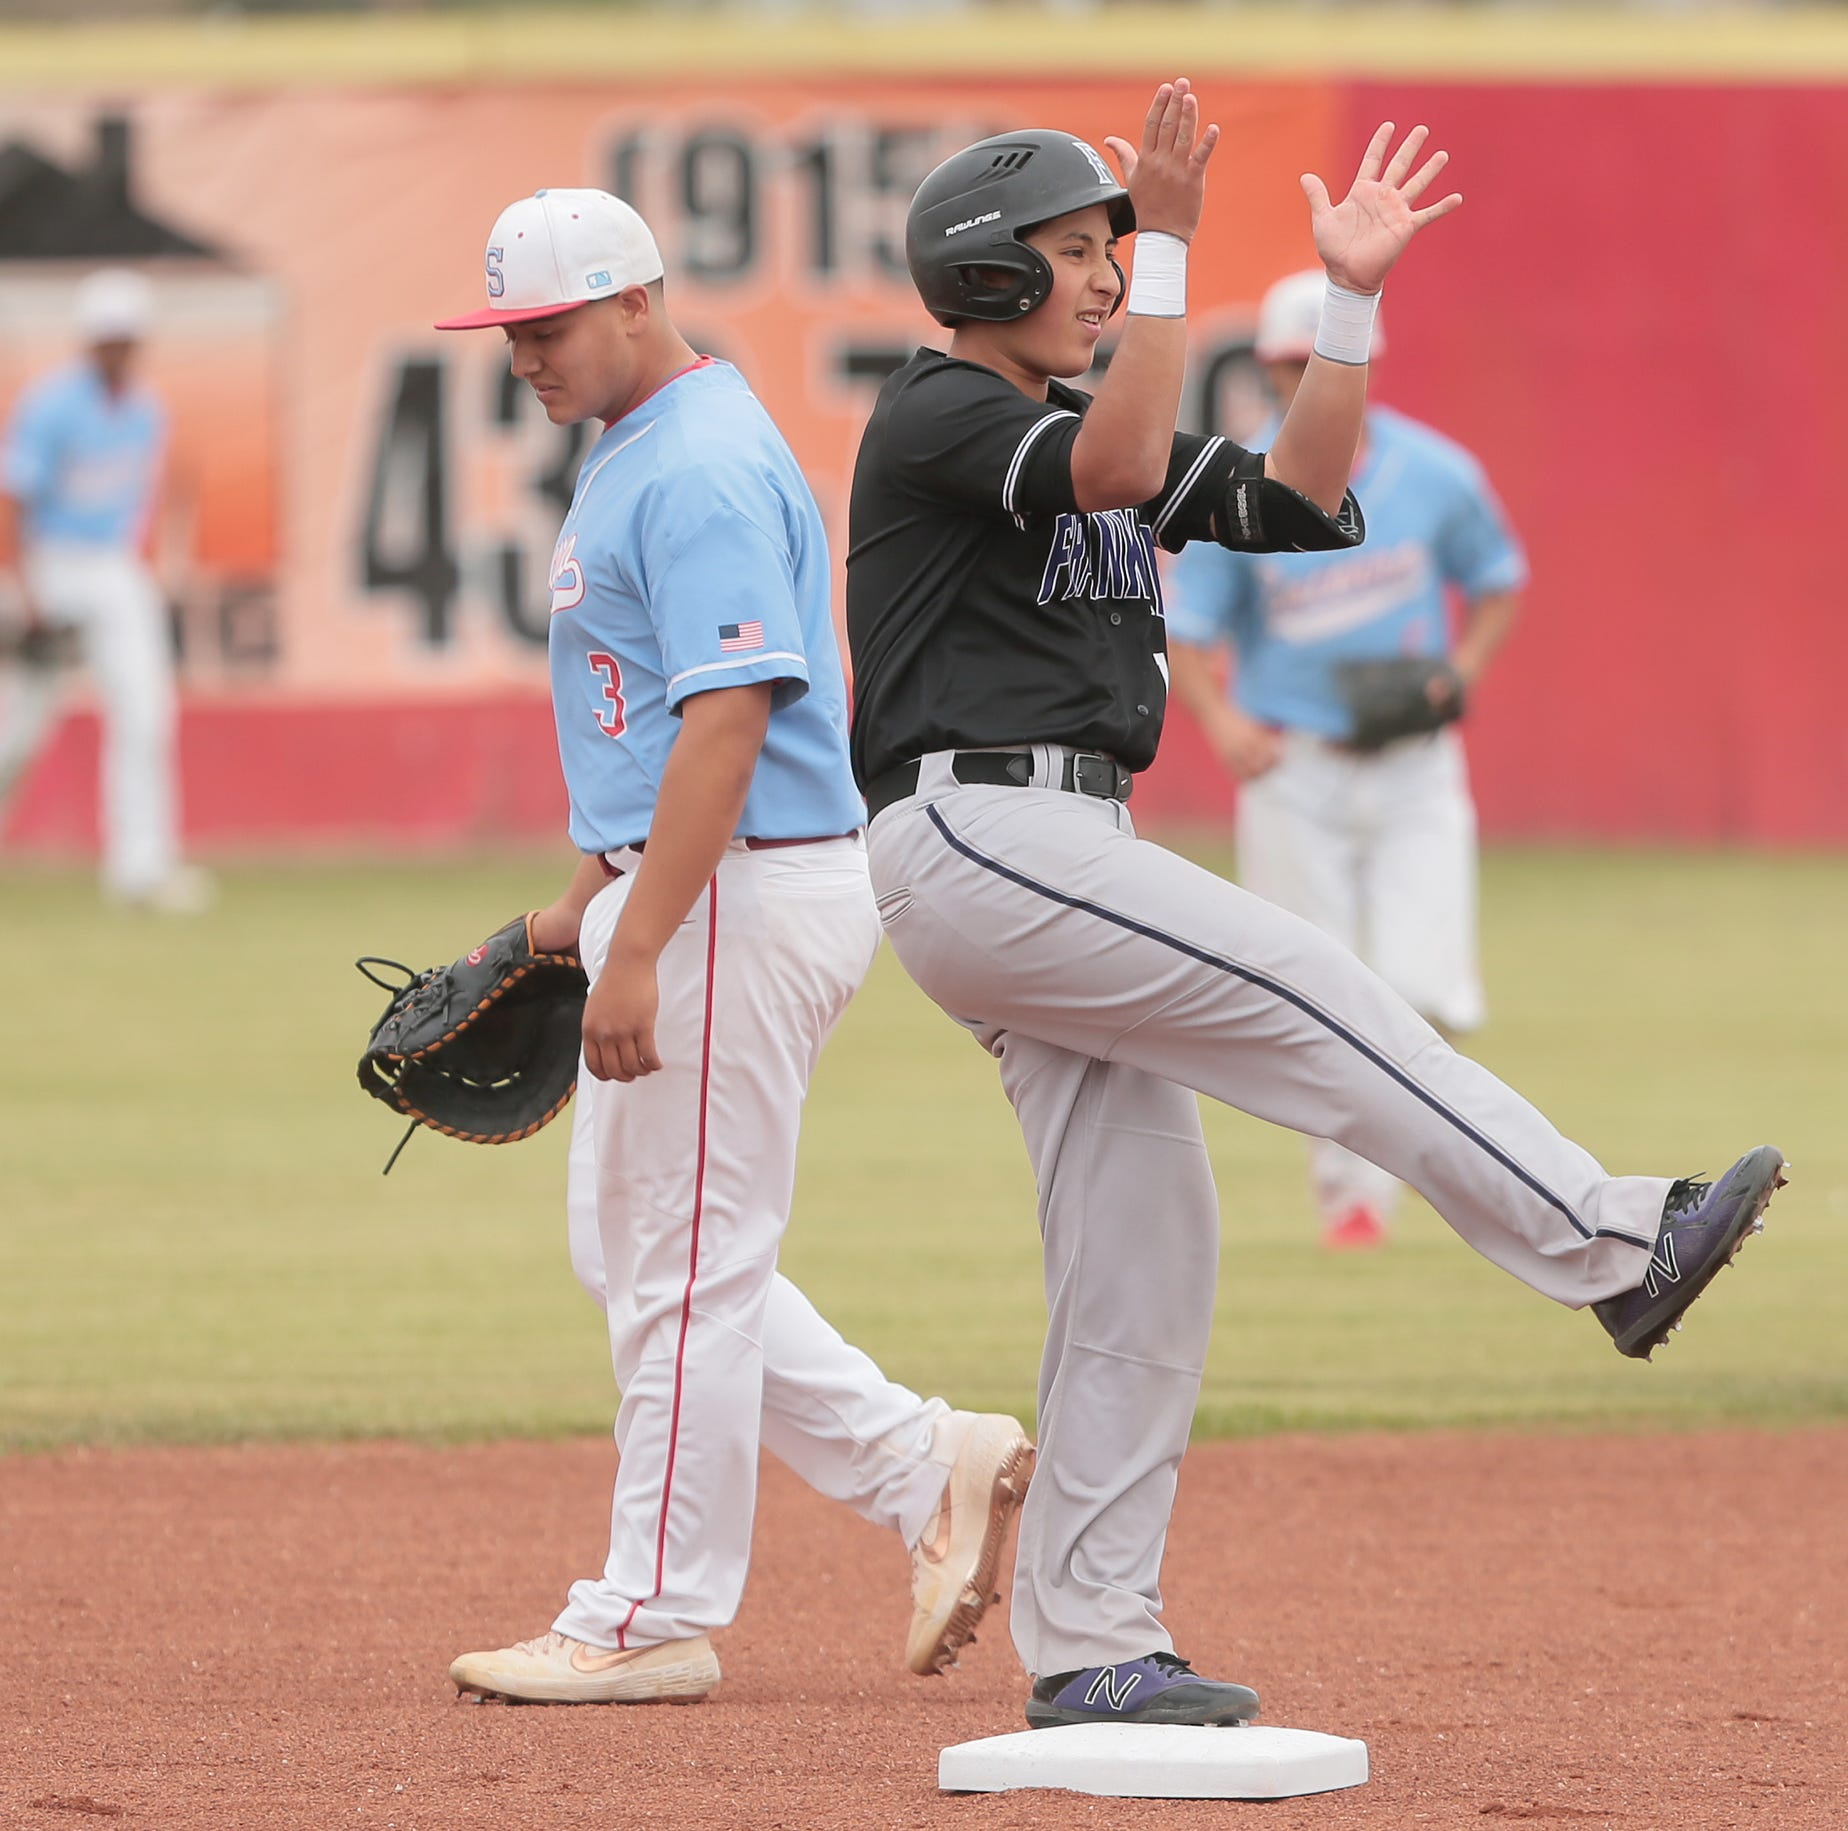 Franklin's Eddie Rodriguez celebrates after hitting a double against Socorro Friday at Socorro High School.